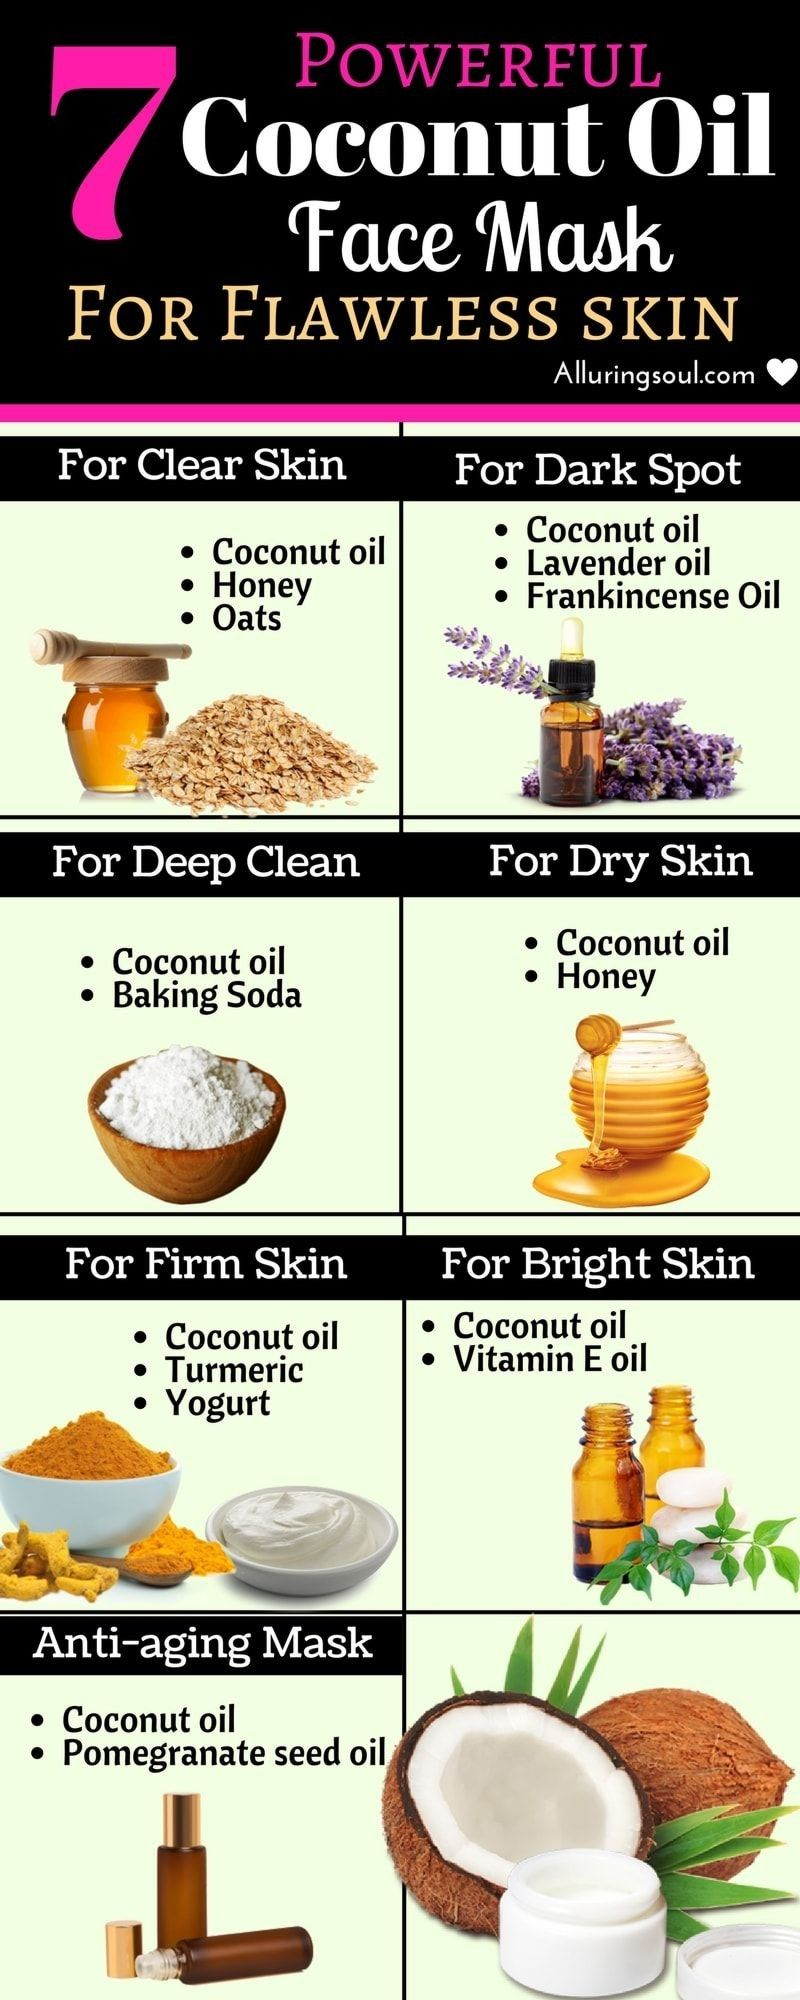 Natural Skin Care Routine Take Pleasure In Your Own Skin The Natural Way By Means Of One Hundred Perc Coconut Oil For Face Coconut Oil Face Mask Homemade Face